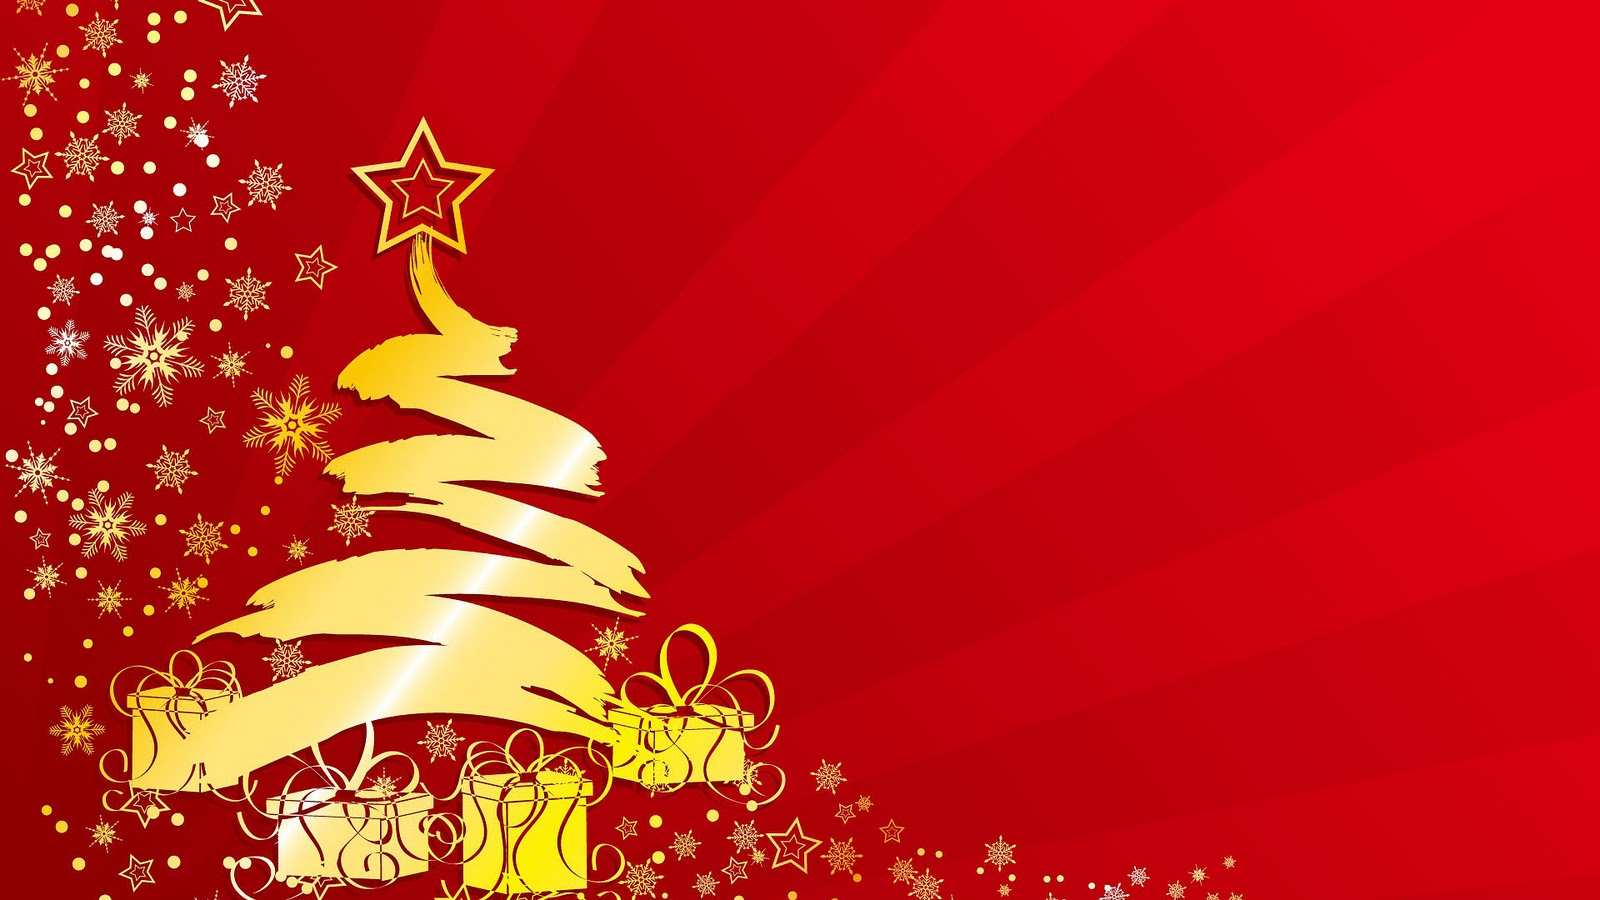 backgrounds for christmas pictures